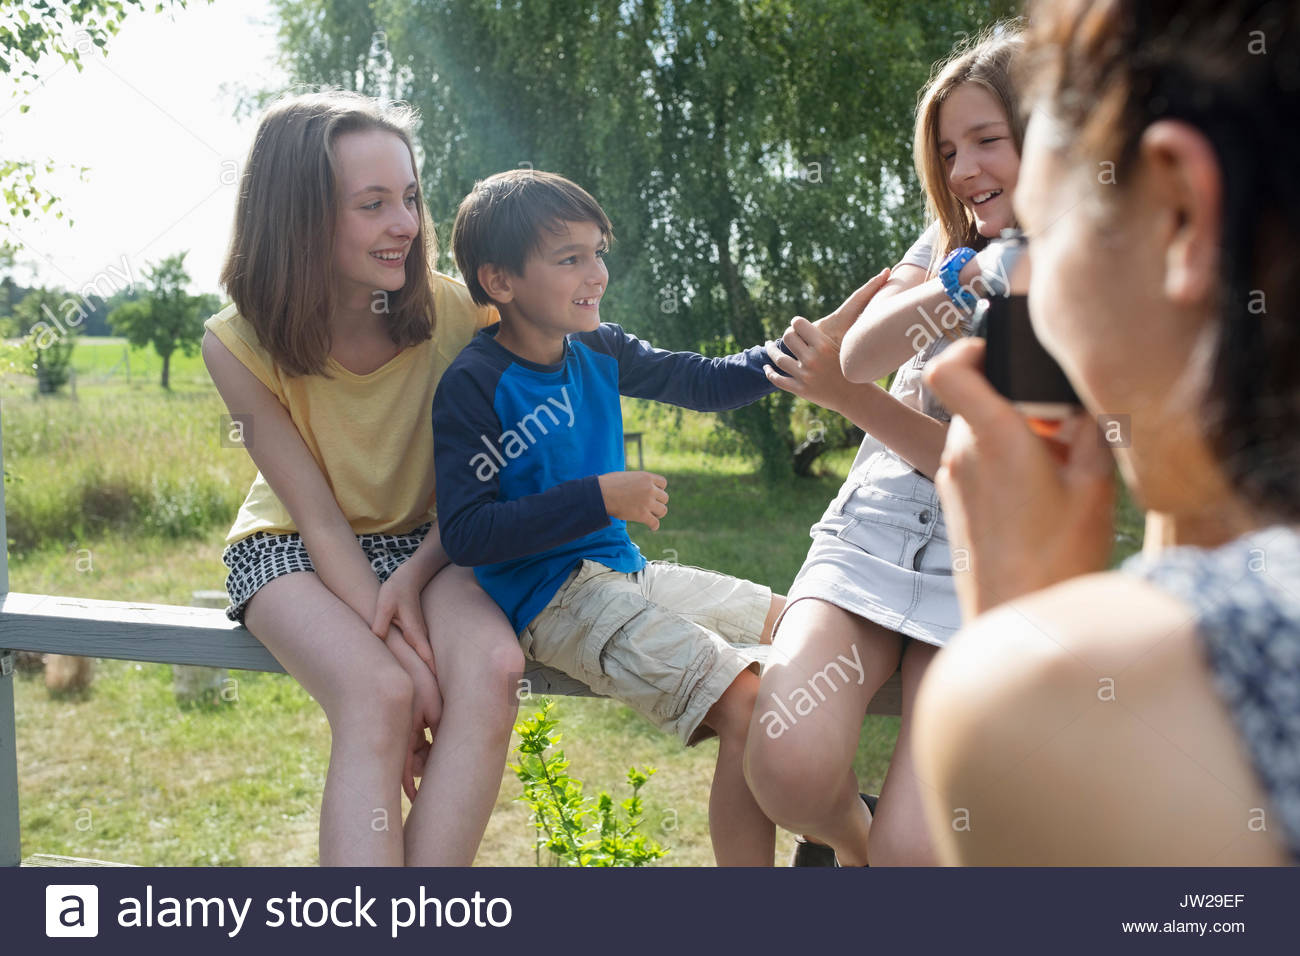 Playful family in rural summer yard - Stock Image